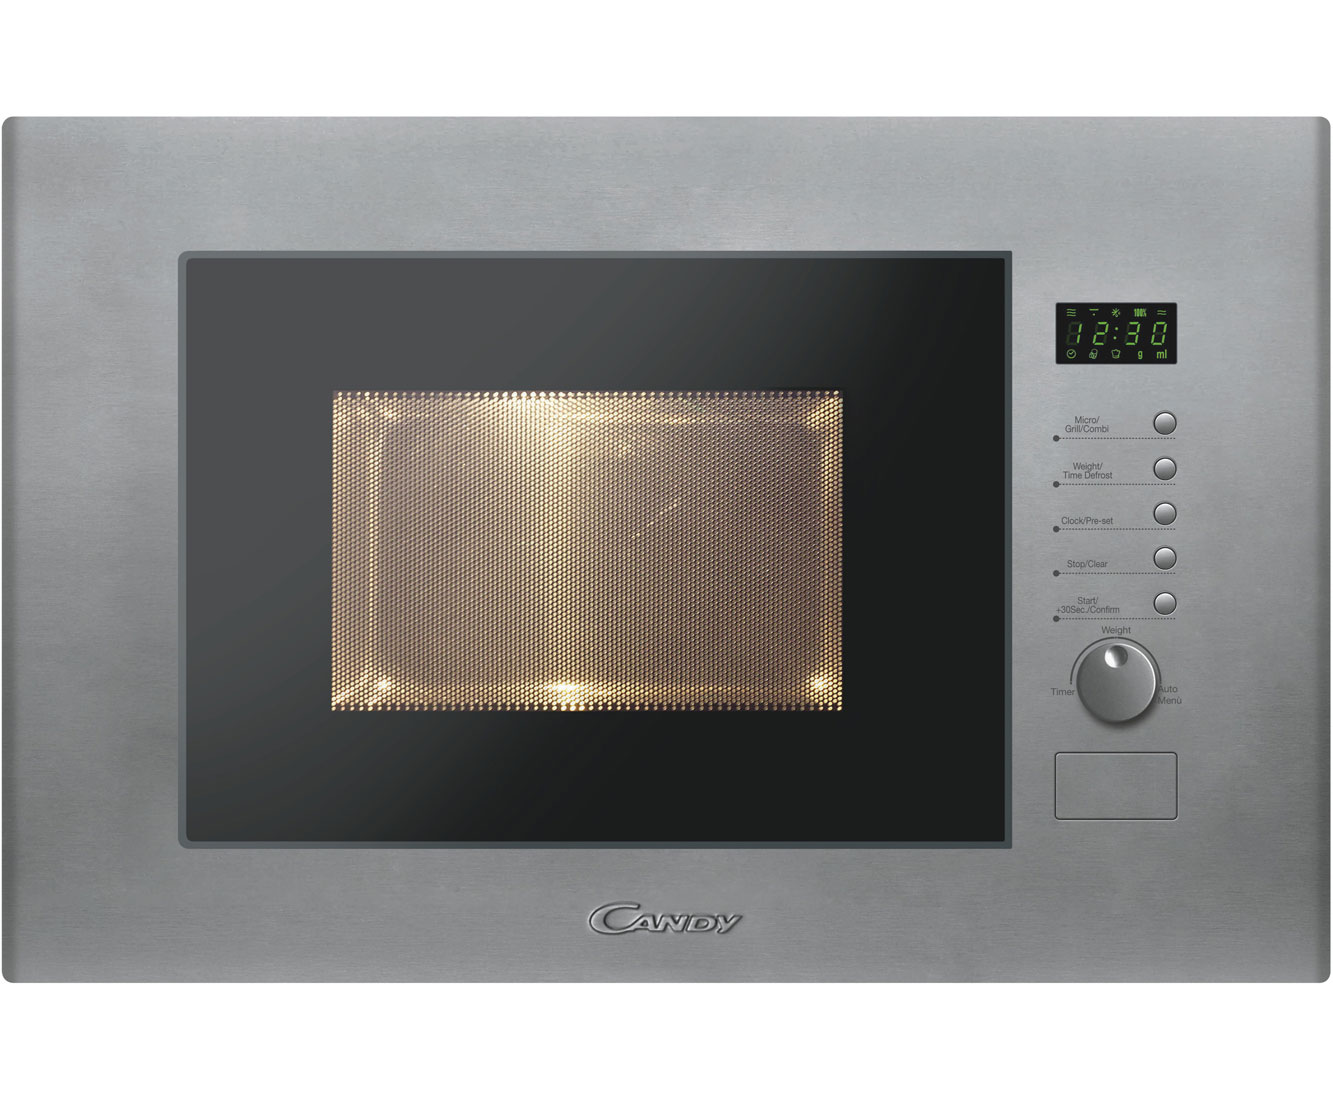 Candy MIC20GDFX Integrated Microwave Oven in Stainless Steel